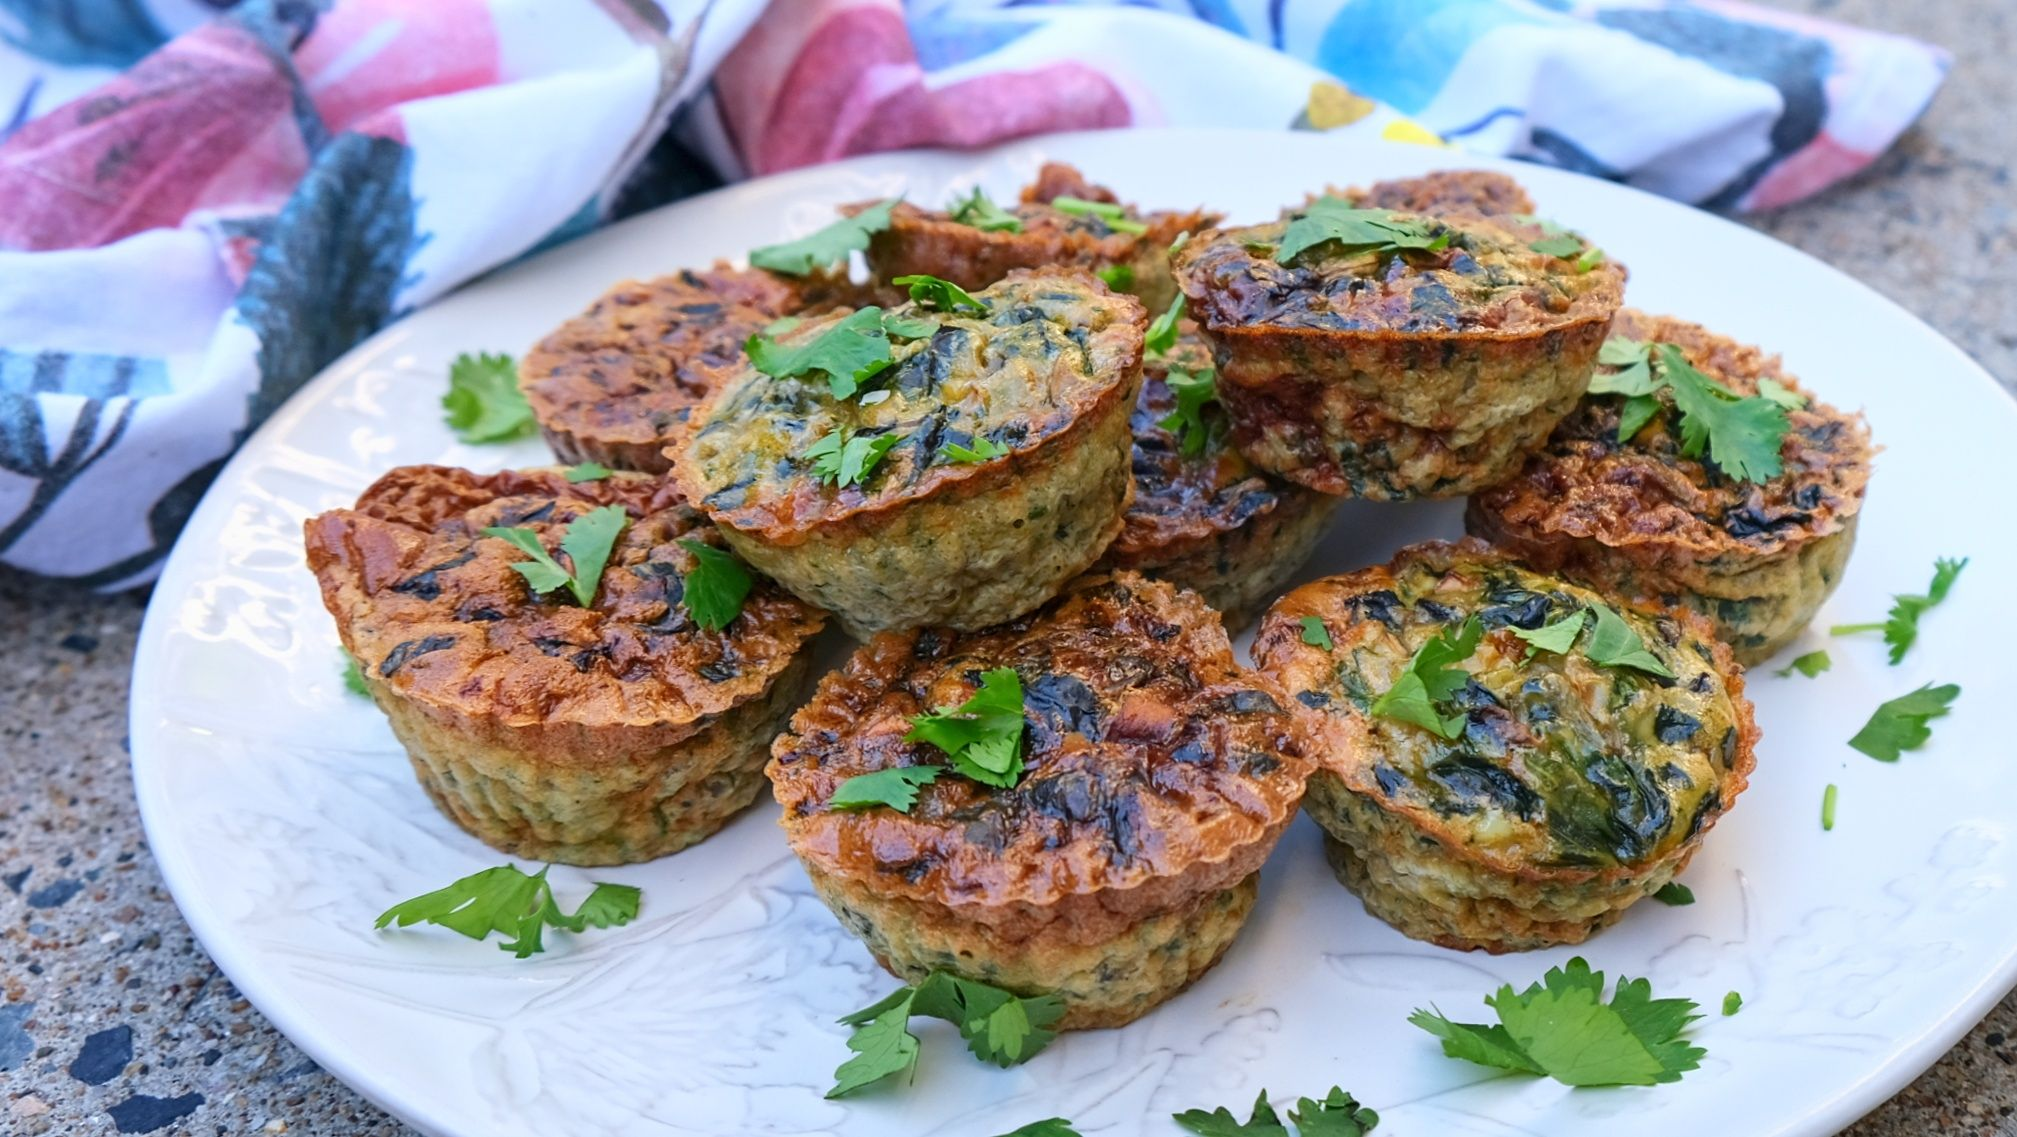 Spinach And Mushroom Egg Muffins (Paleo, Whole30, Low Carb)